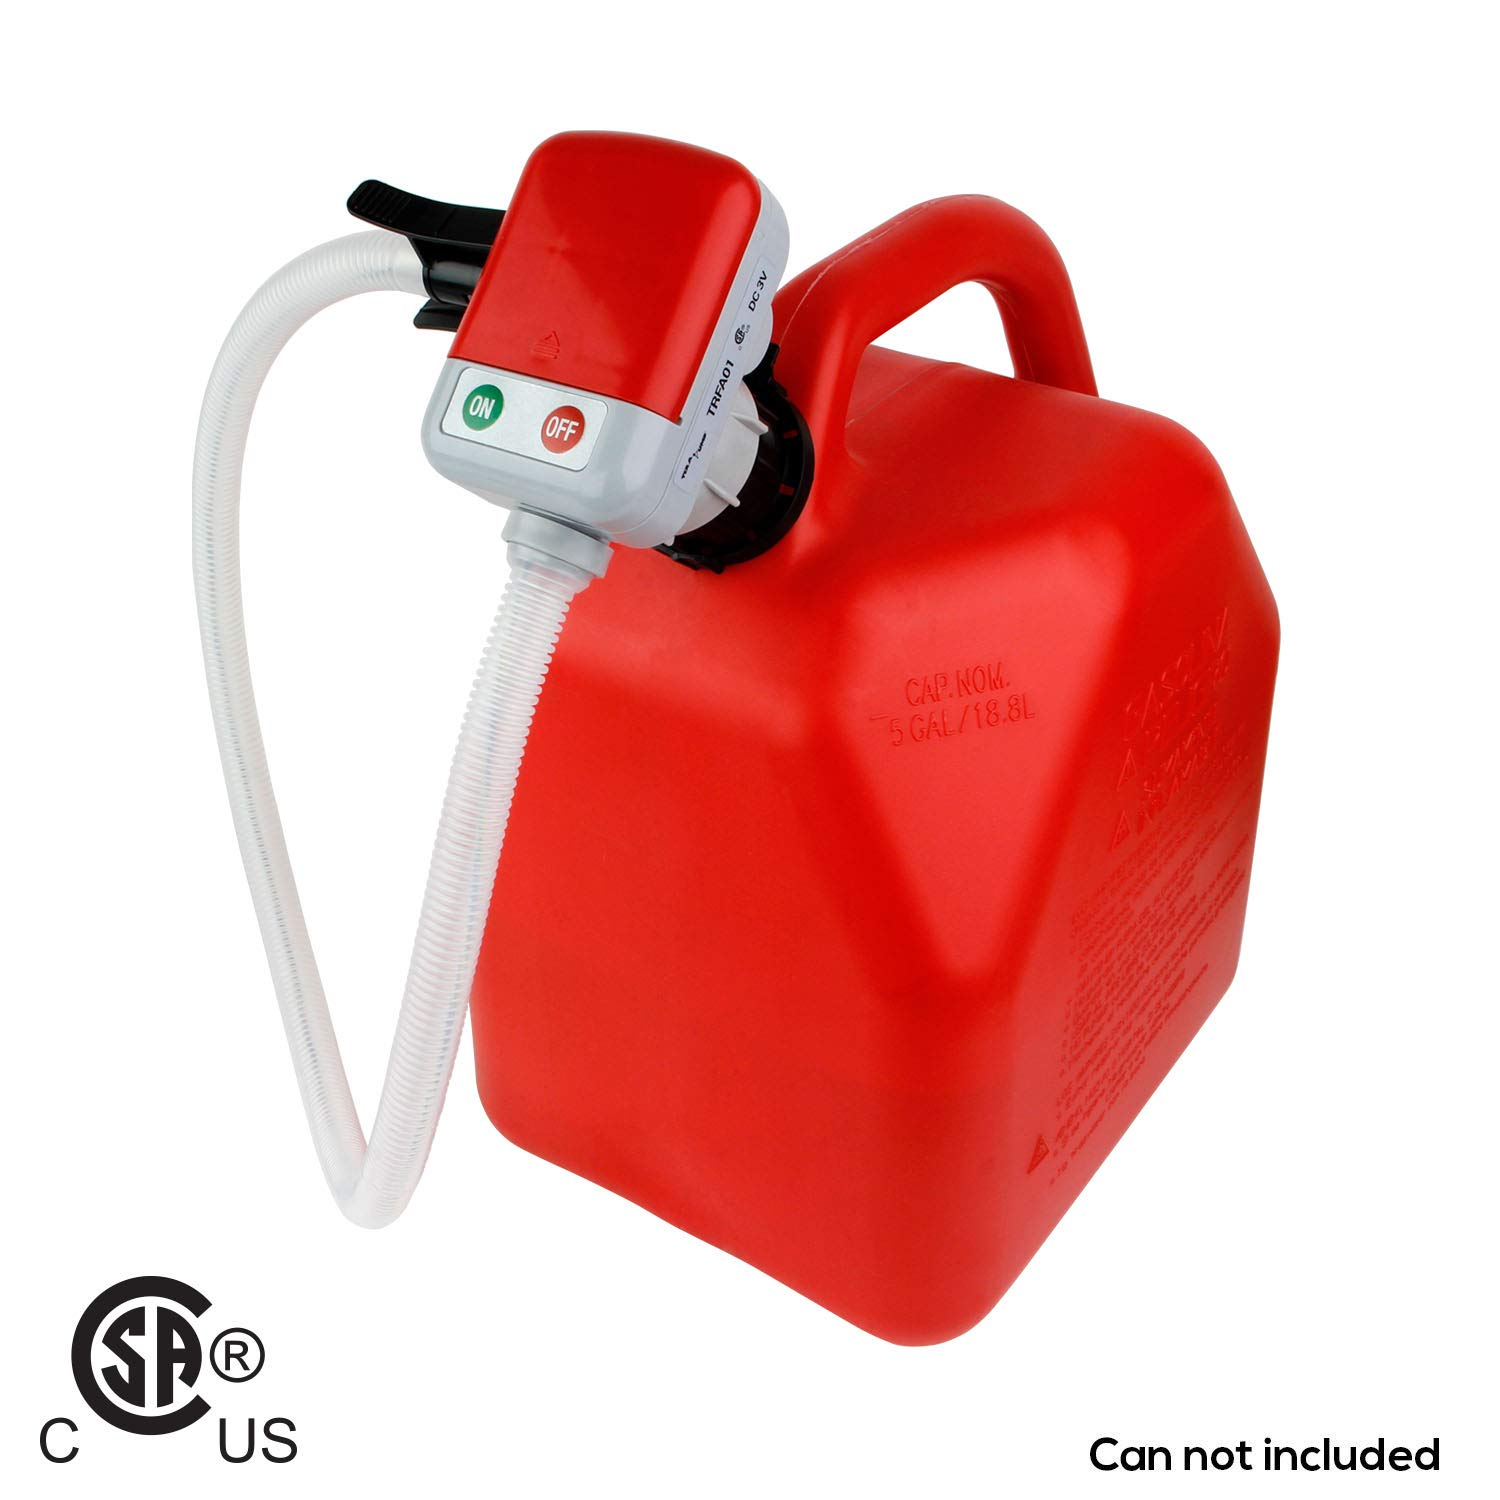 Garage Gas Can Pump/No More Heavy Gas Can Lifting/No More backache/Dad Father Birthday Gift Present Present from Daughter Son Wife/Birthday Gifts for him Men